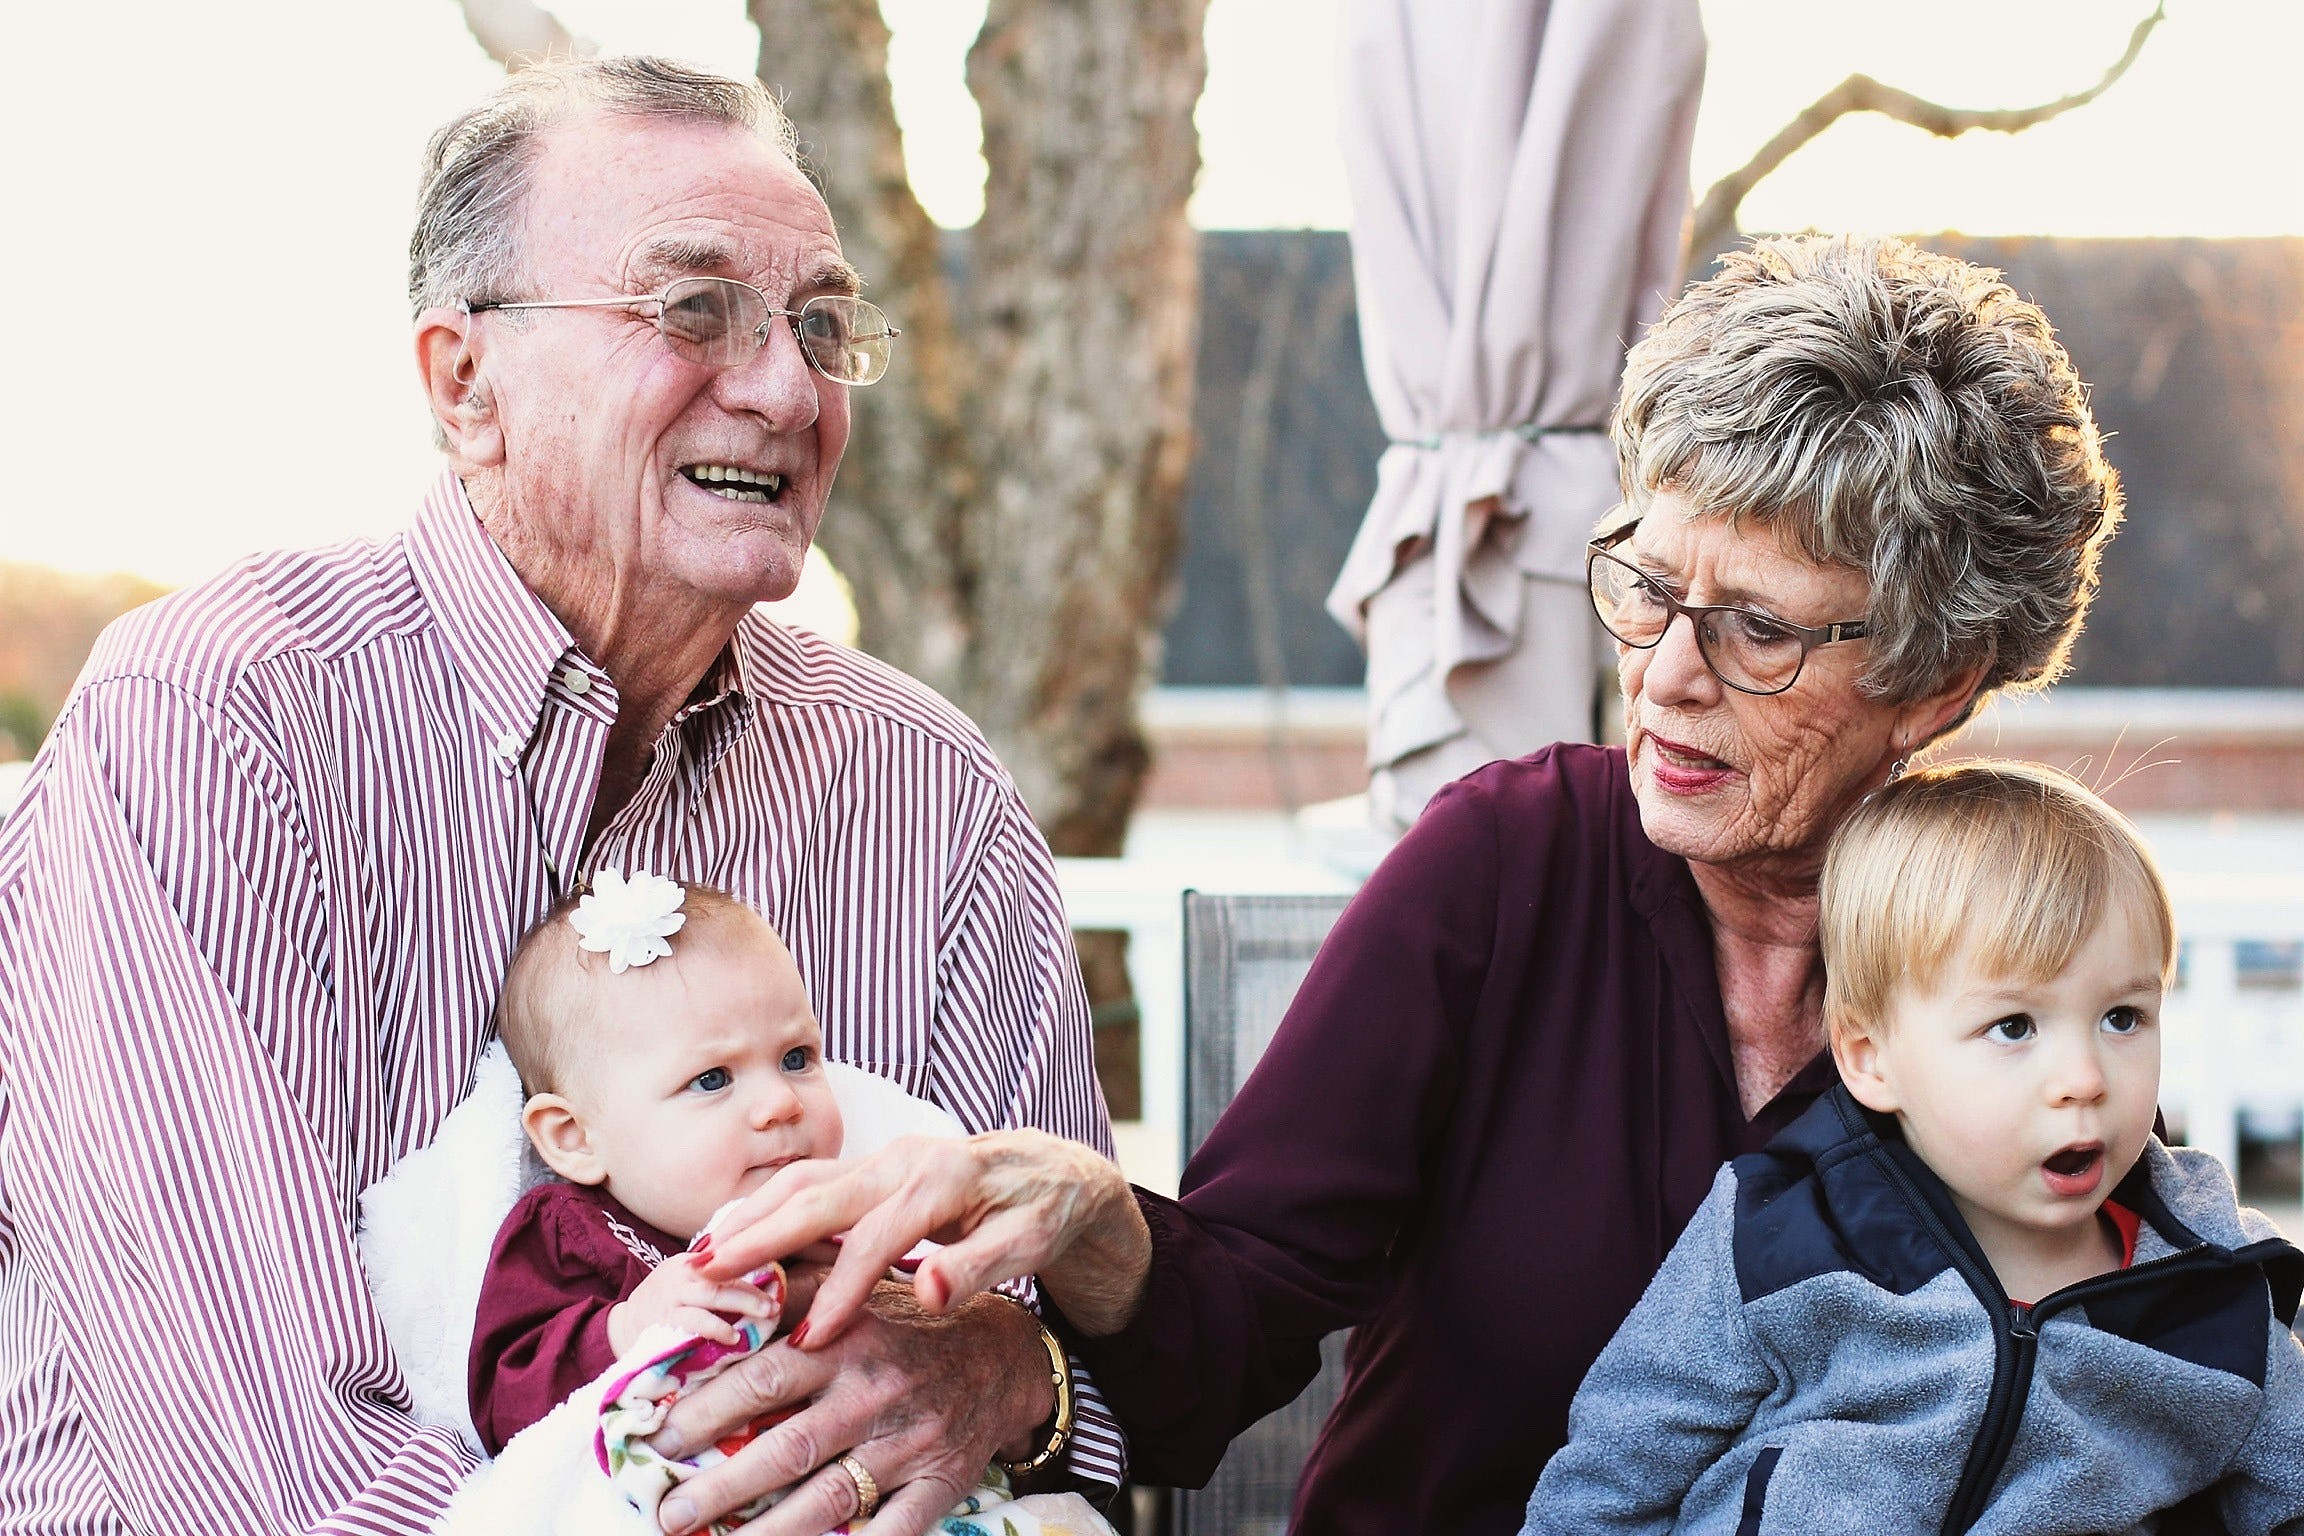 Are You a Grandparent or Relative Raising a Child?